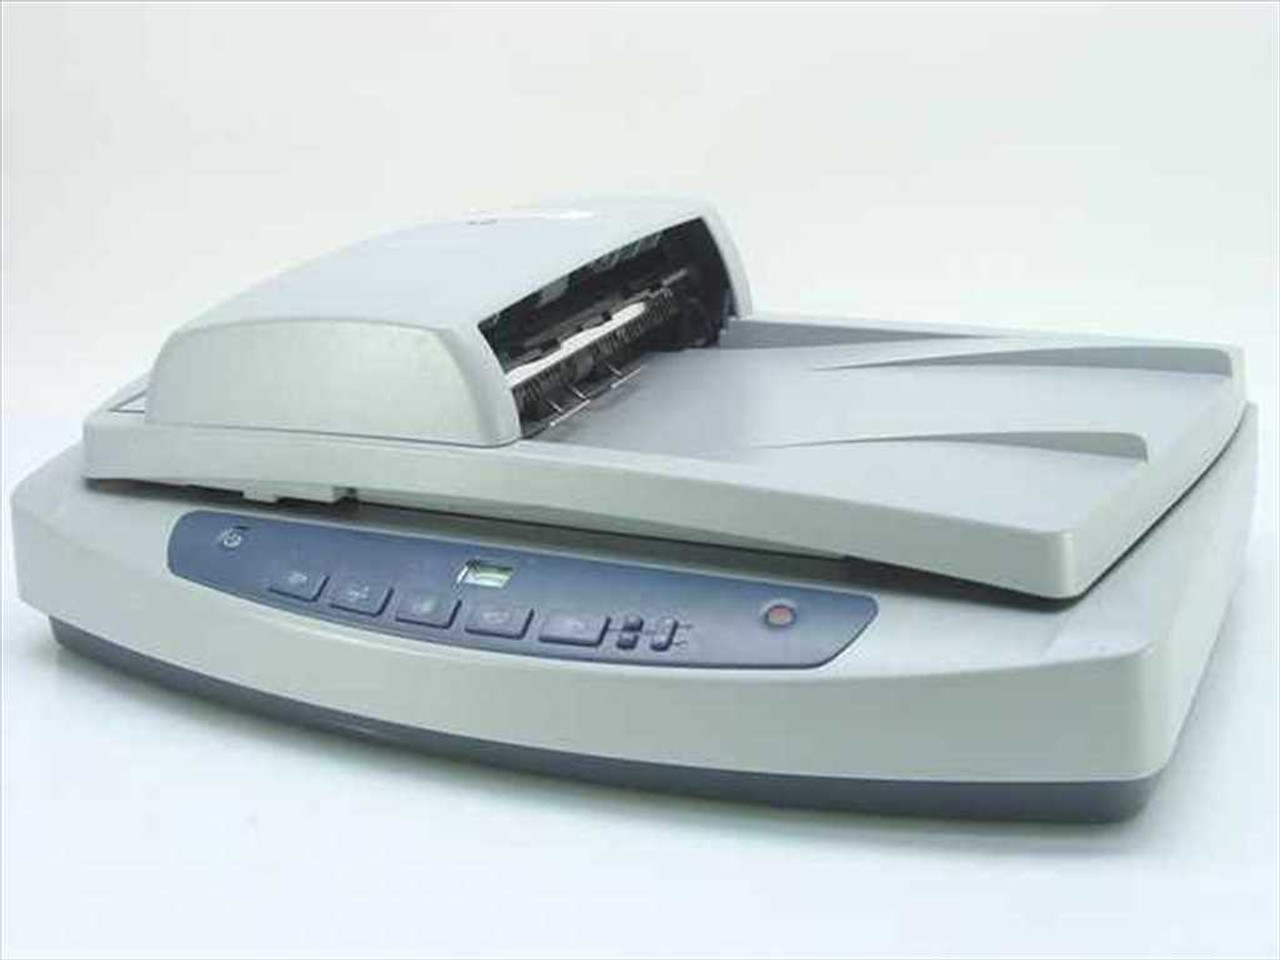 HP SCANNER 4500C DRIVERS WINDOWS XP